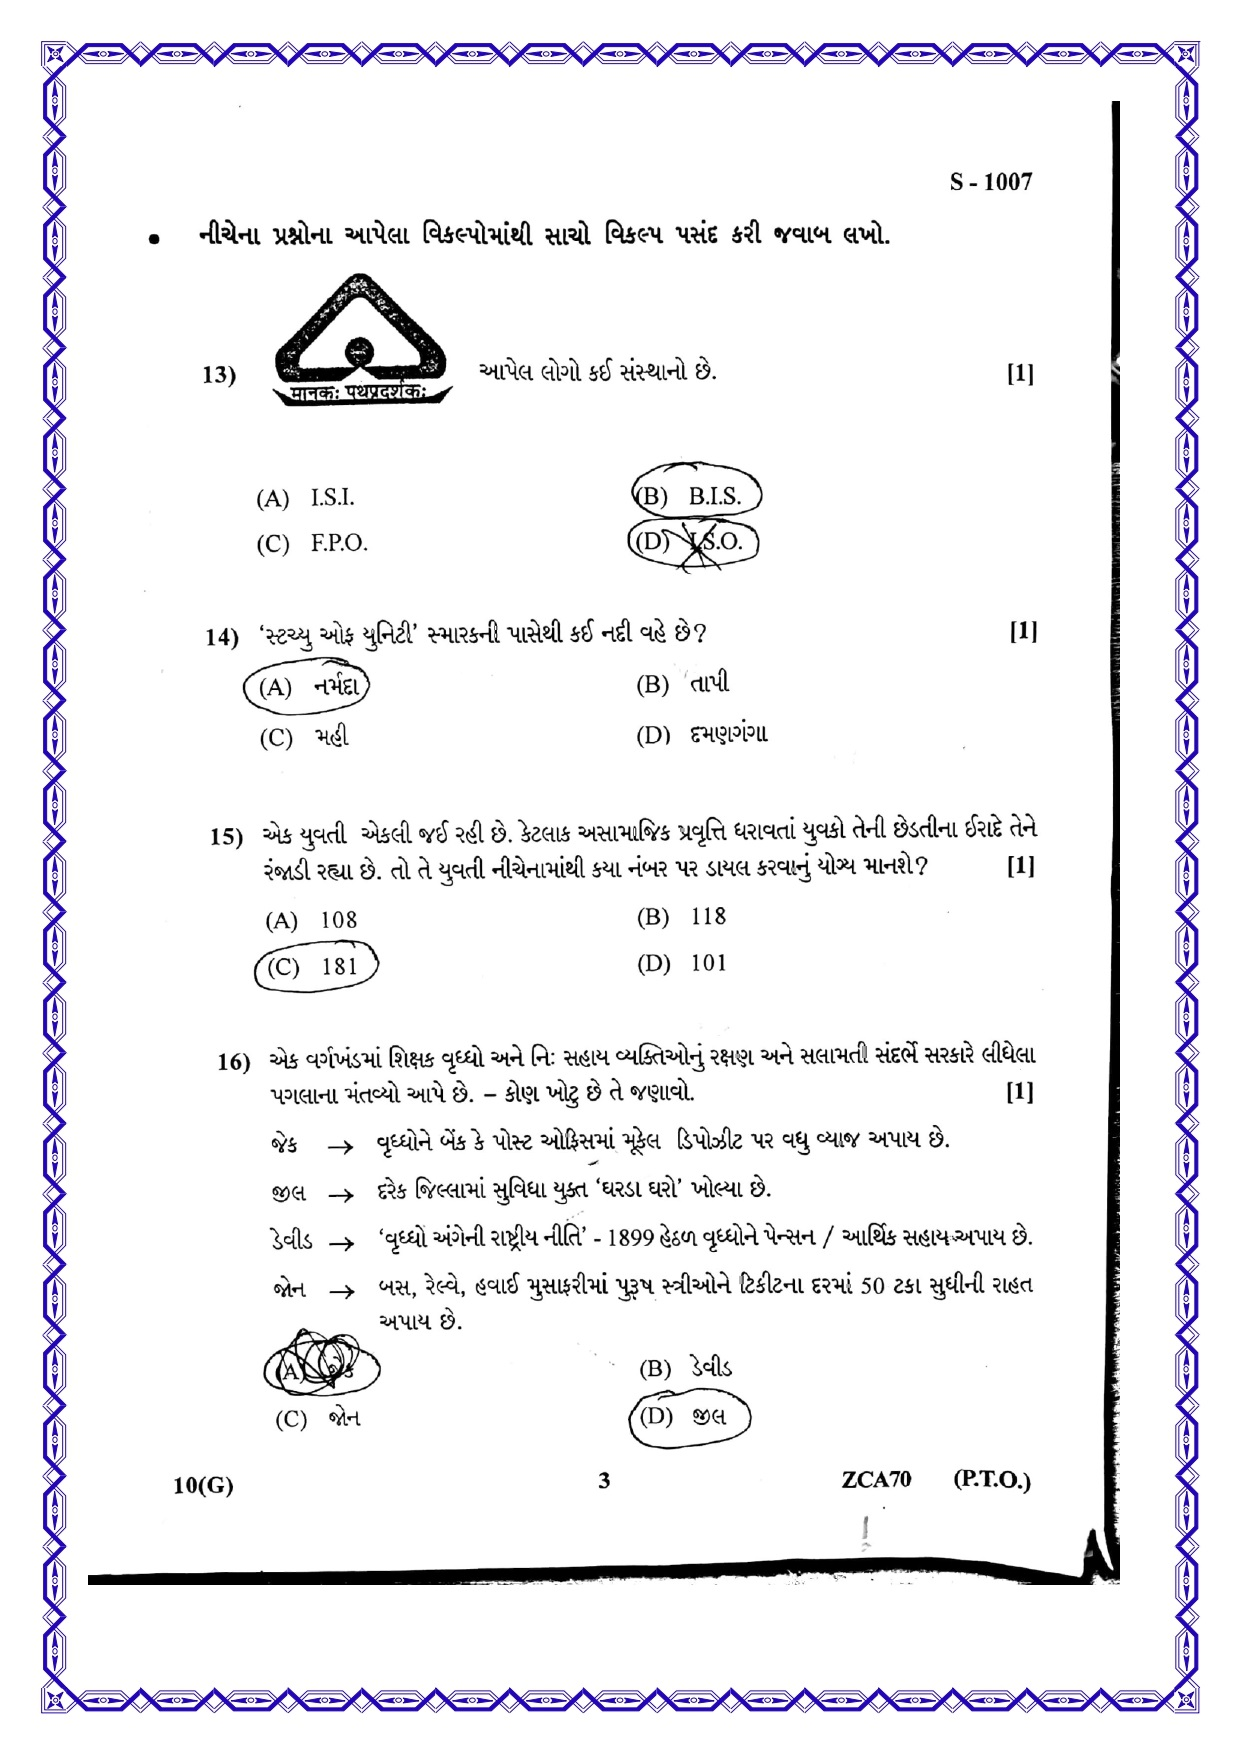 Today's GSEB 10th SSC Social Science Answer key : Samajik Vigyan Paper Solution 2020 19